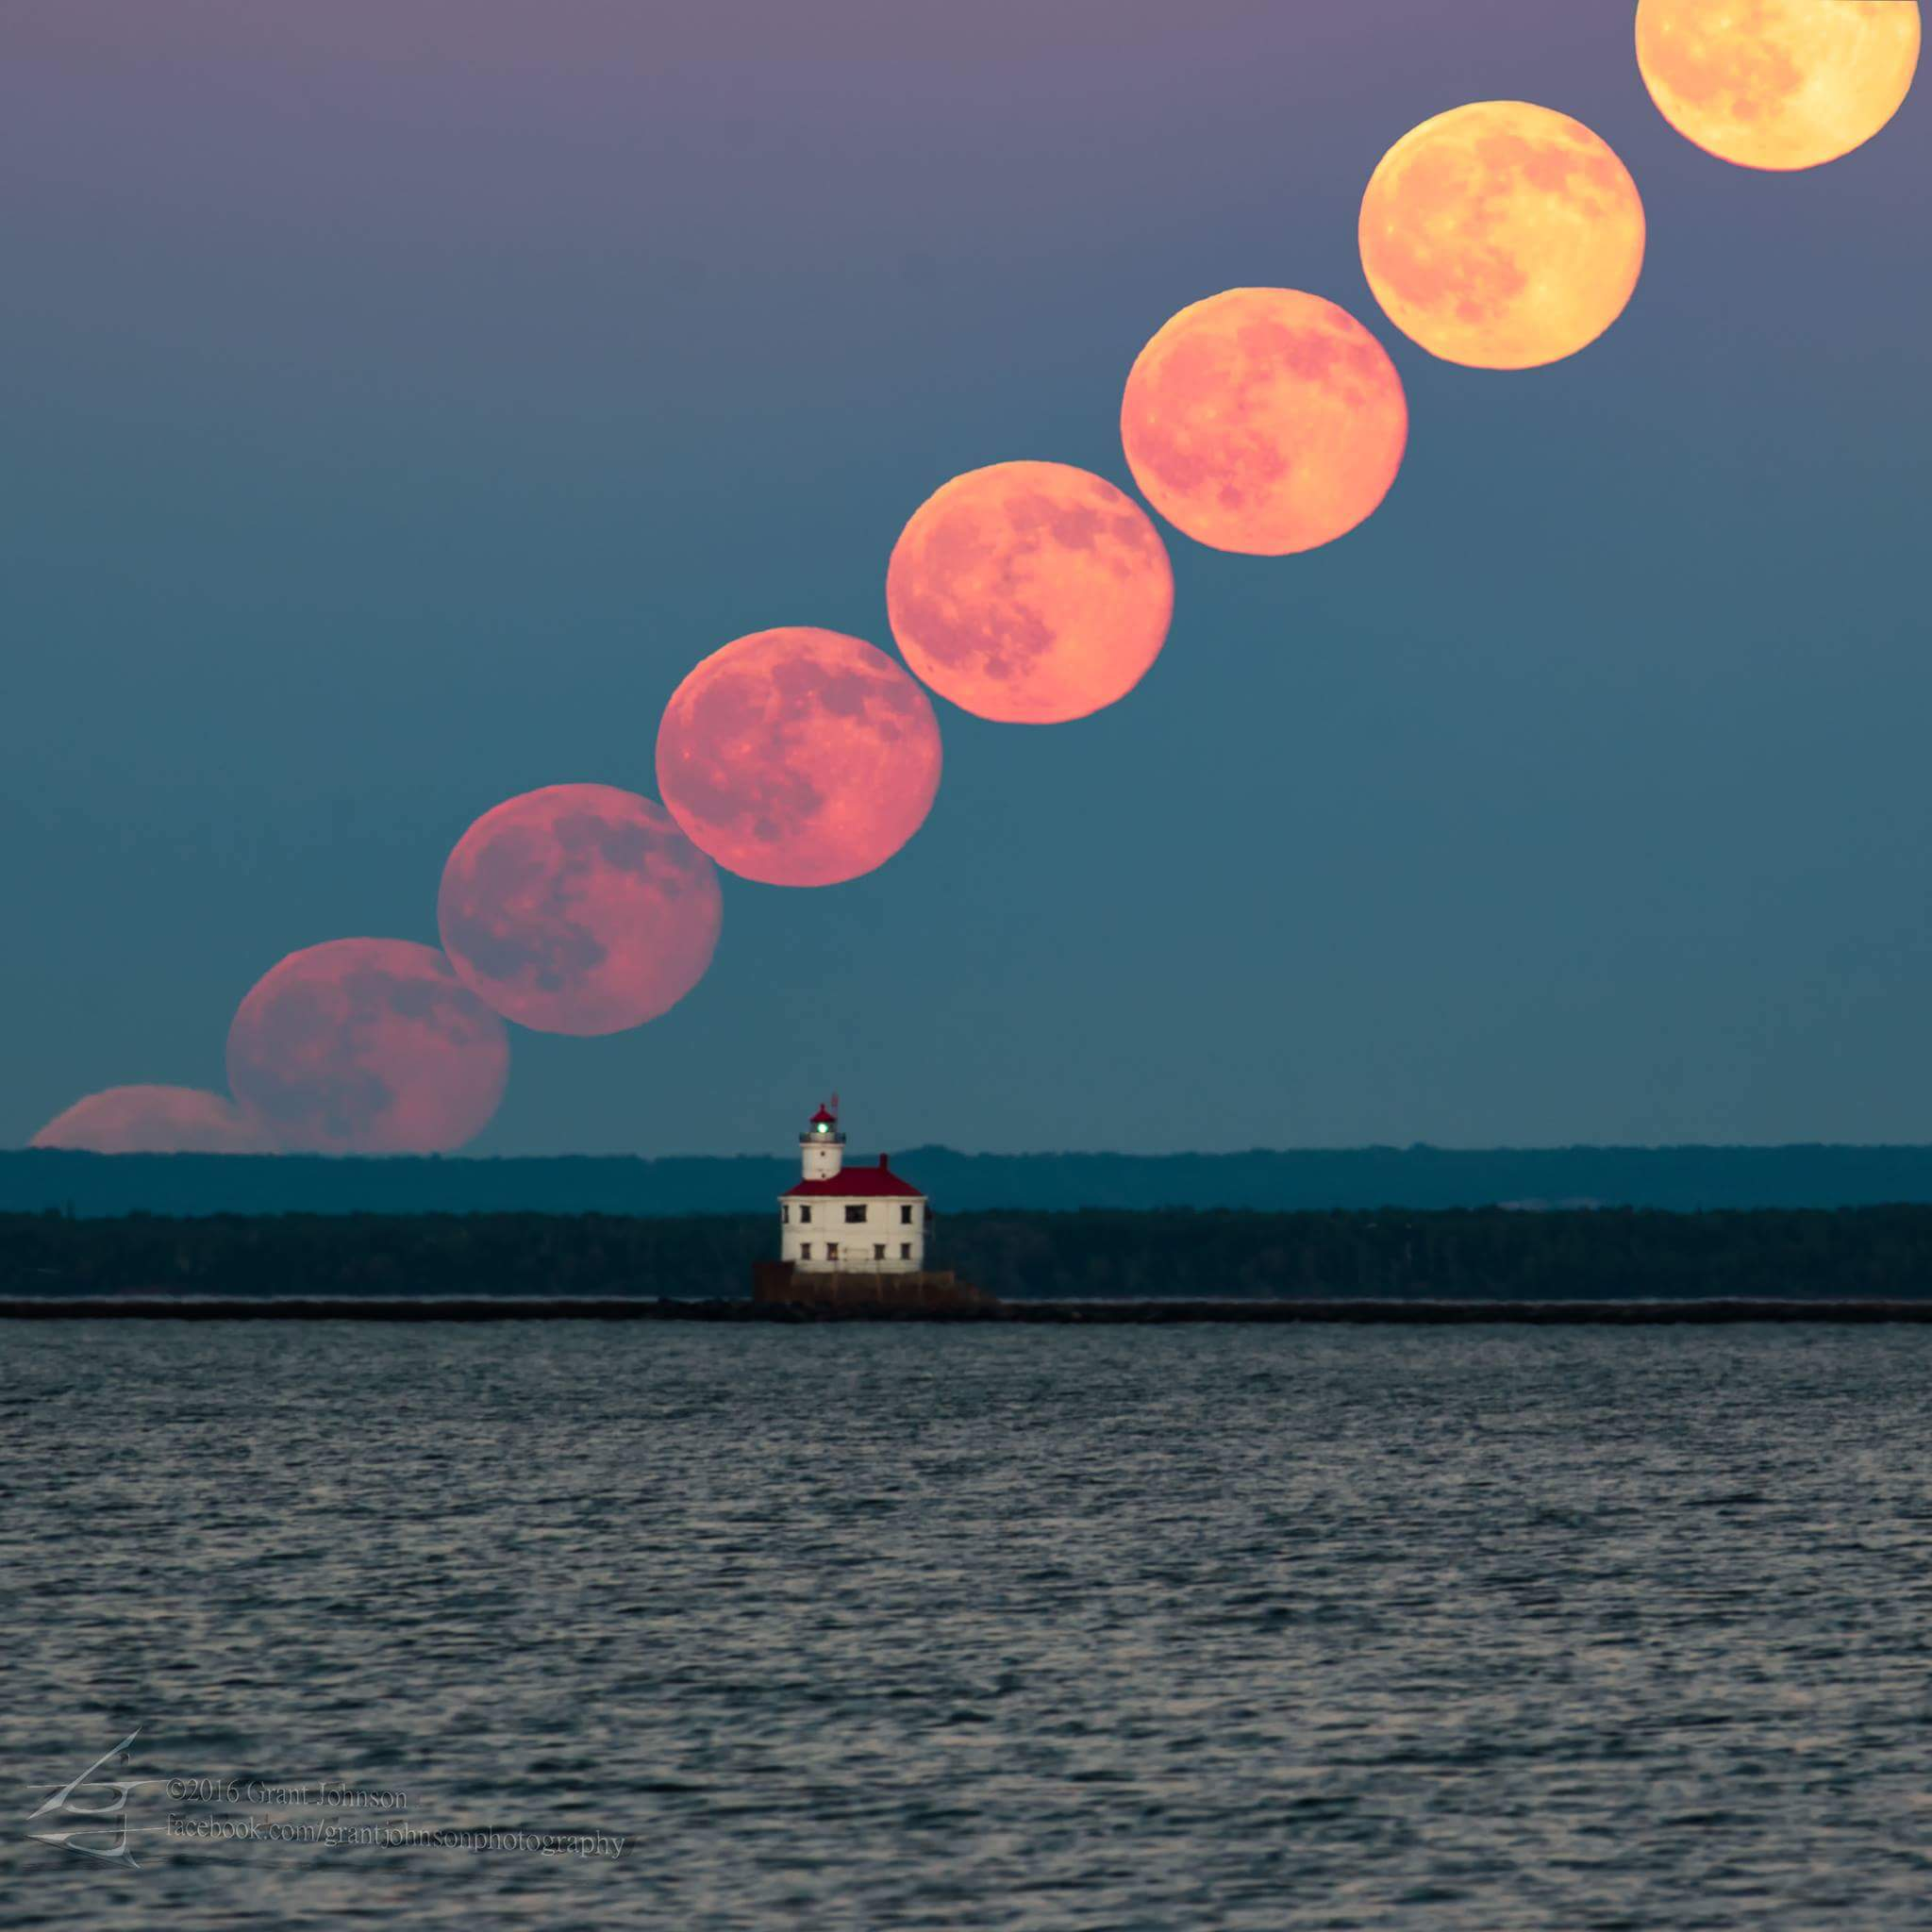 Many Moons over Duluth by Grant Johnson